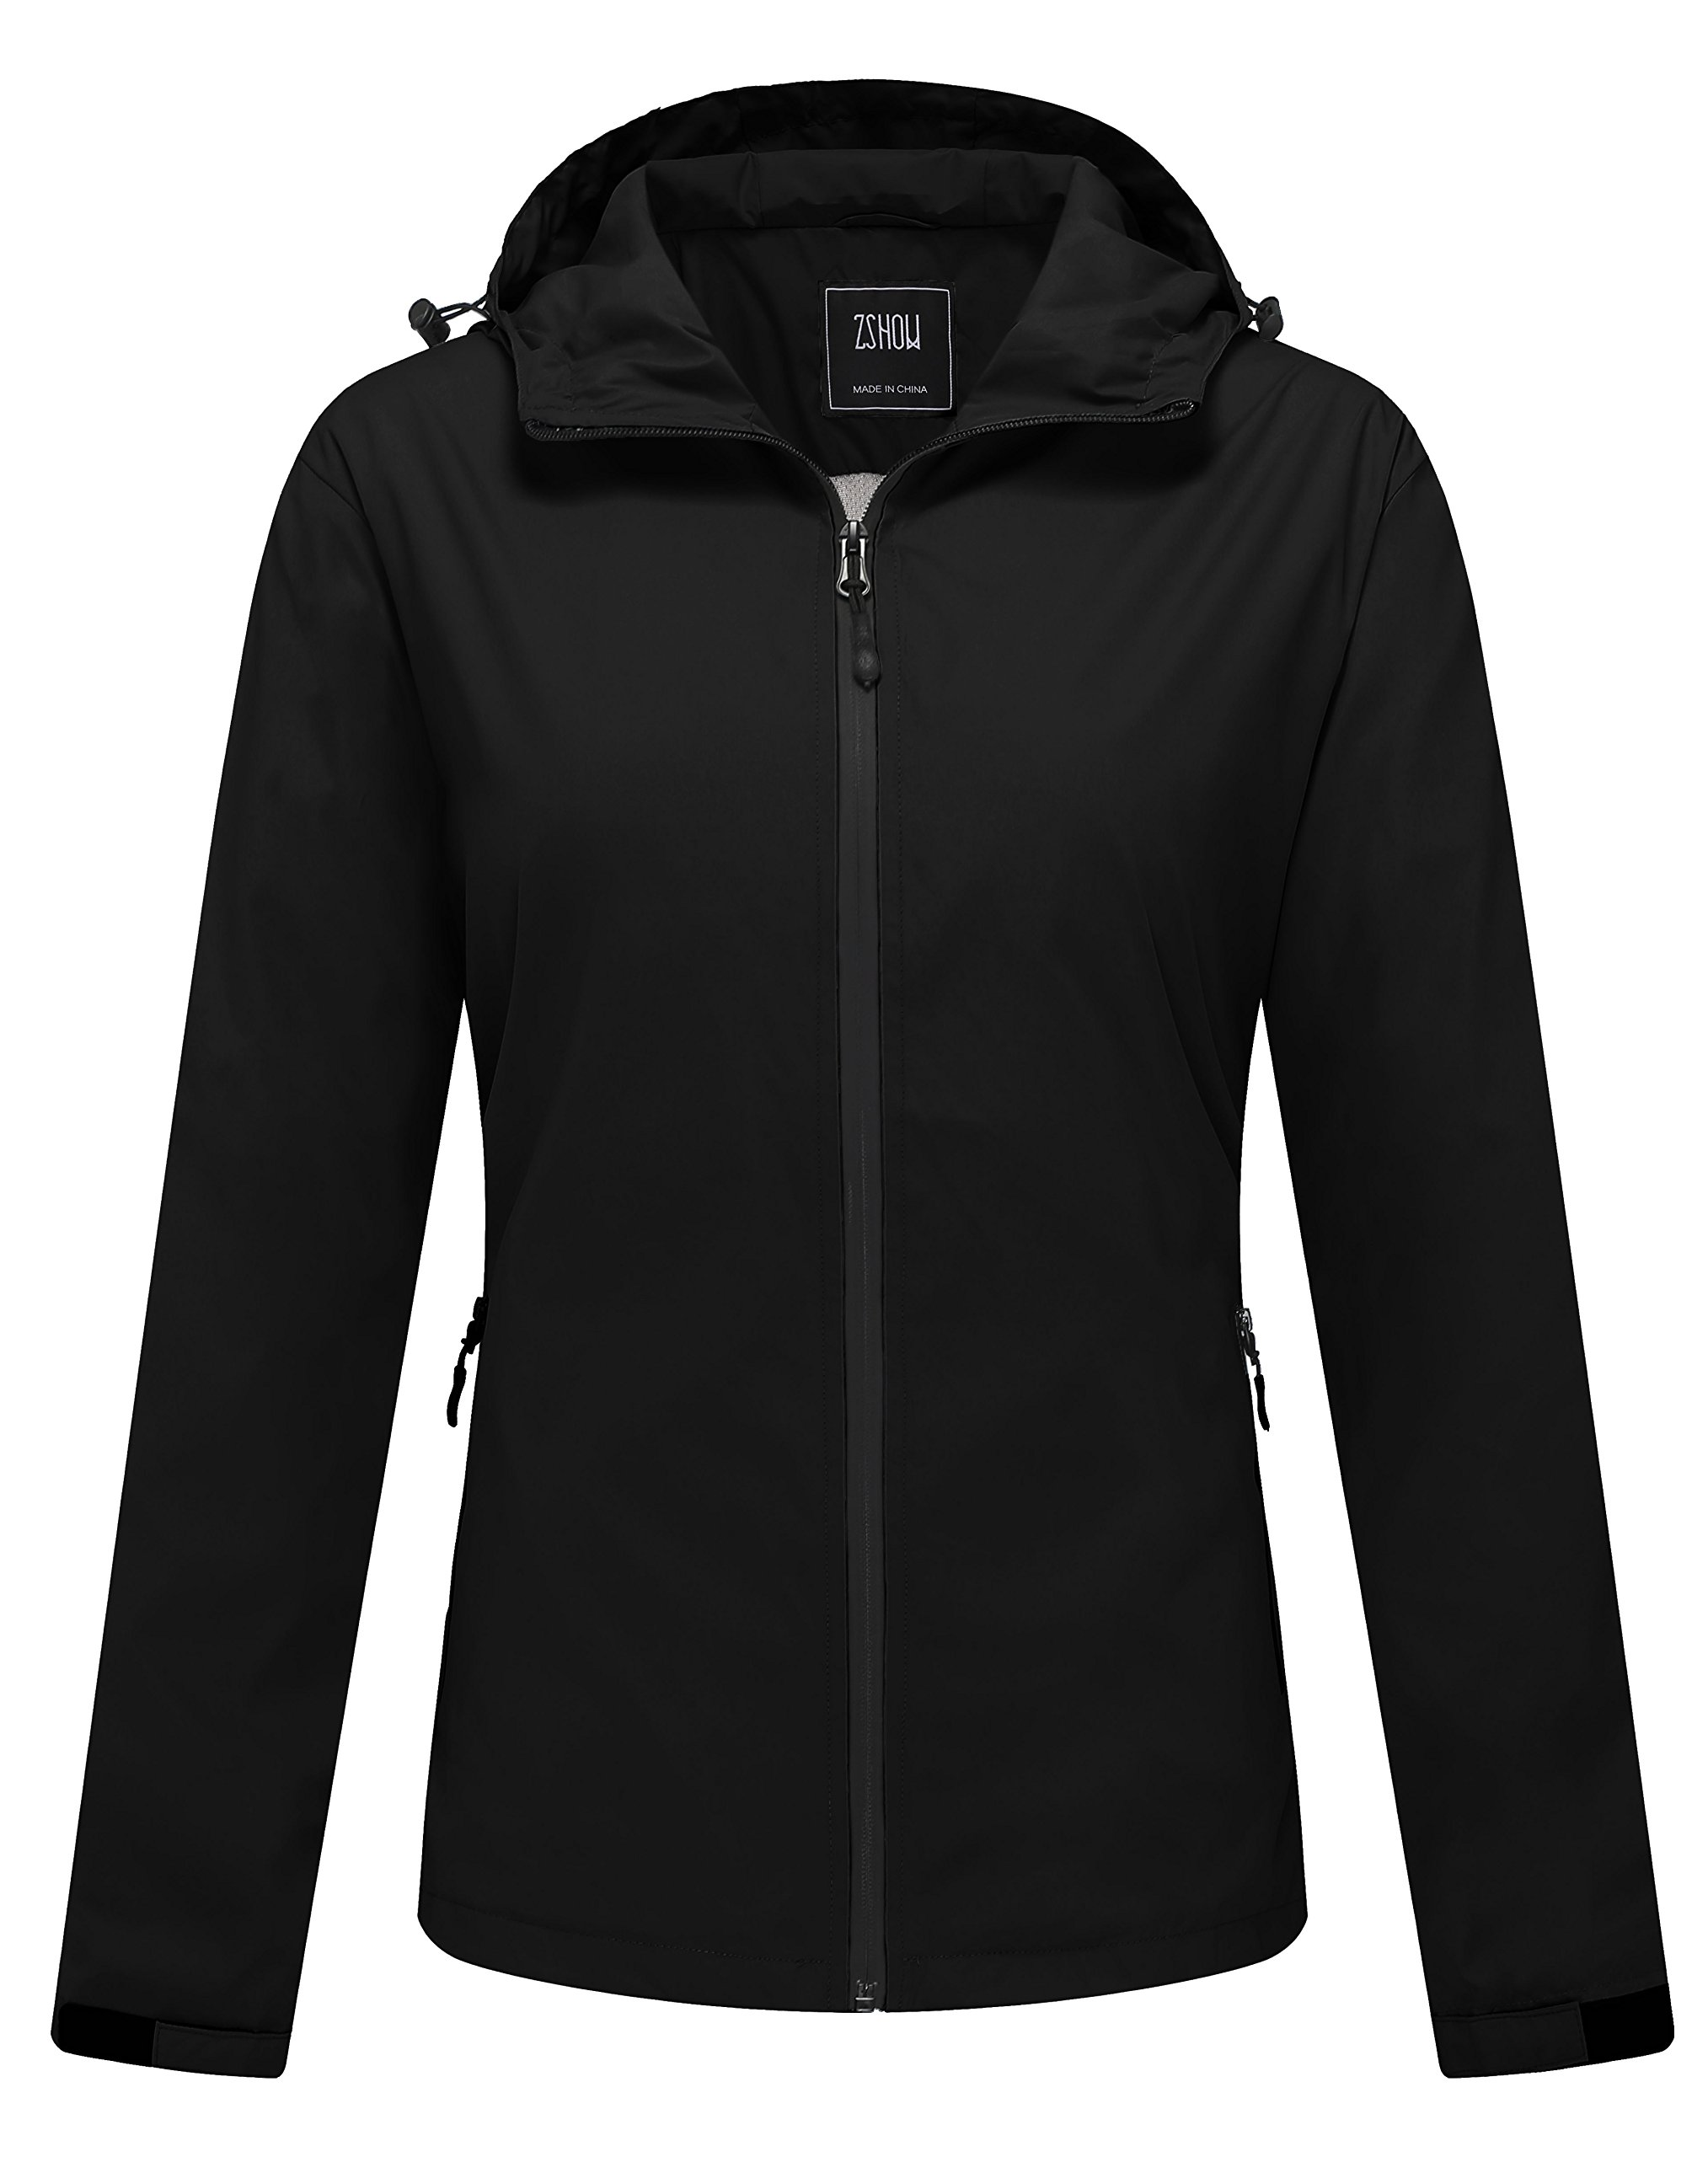 ZSHOW Women's Packable Water and Sand Repellent Windproof Outer Lightweight Runnning Jacket Windcheater with Hood (Black,Medium)